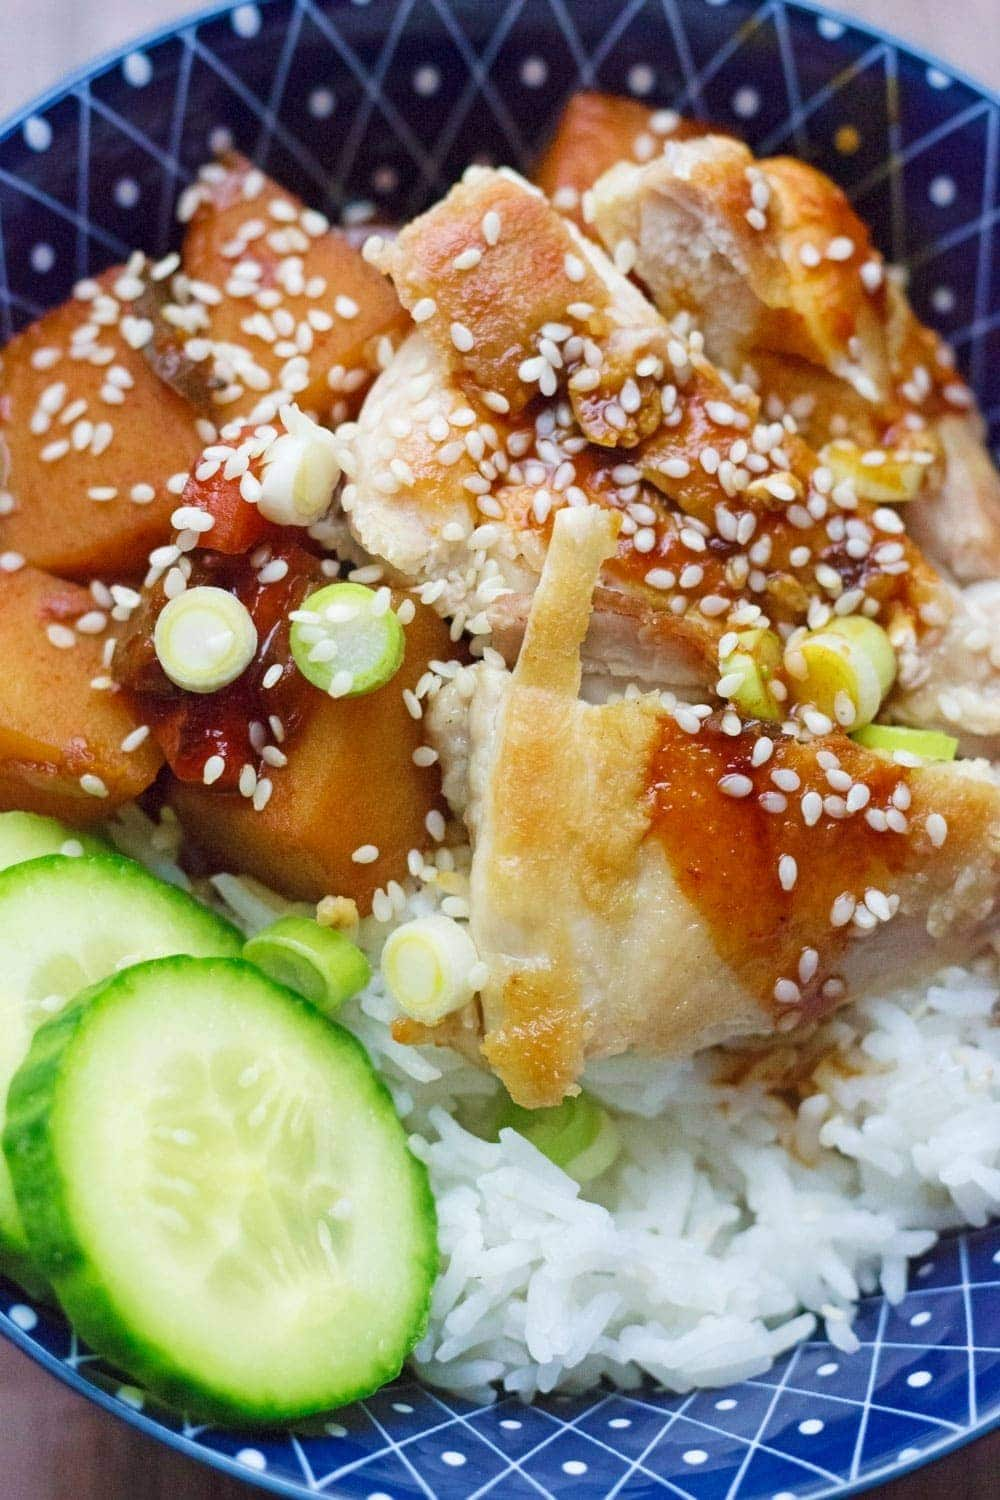 Spicy Korean chicken & potato stew, or dakdoritang, has the perfect balance of sweet and spicy from the use of gochujang and sugar in the broth.